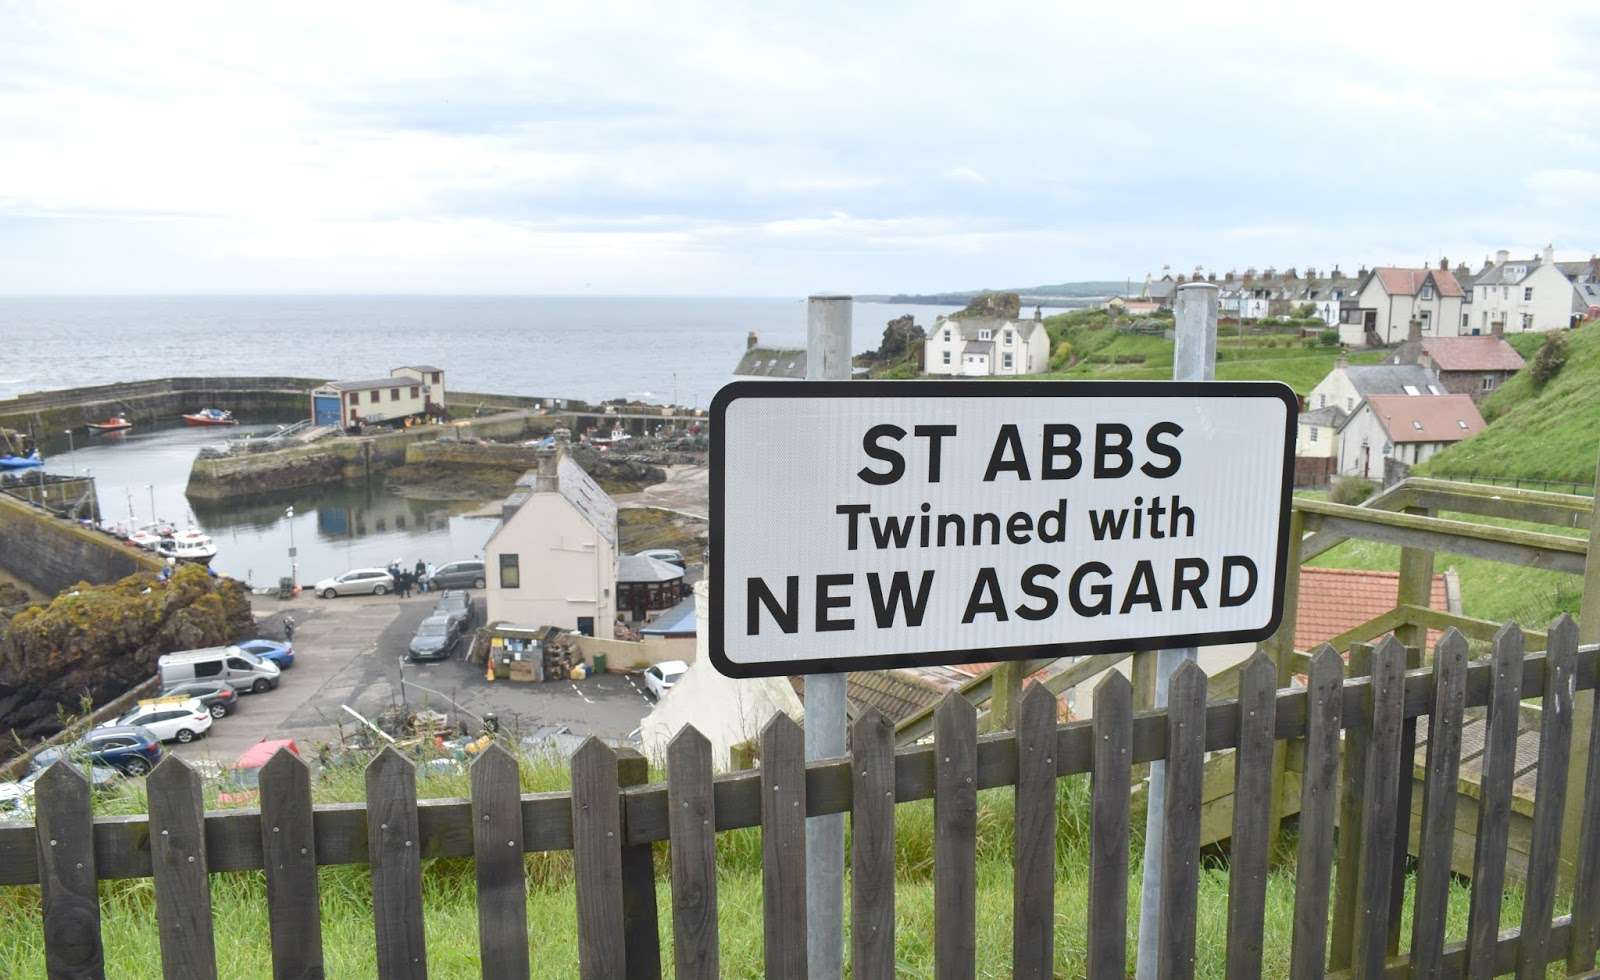 Avengers Filming Location in Scotland - Exploring St Abbs and New Asgard